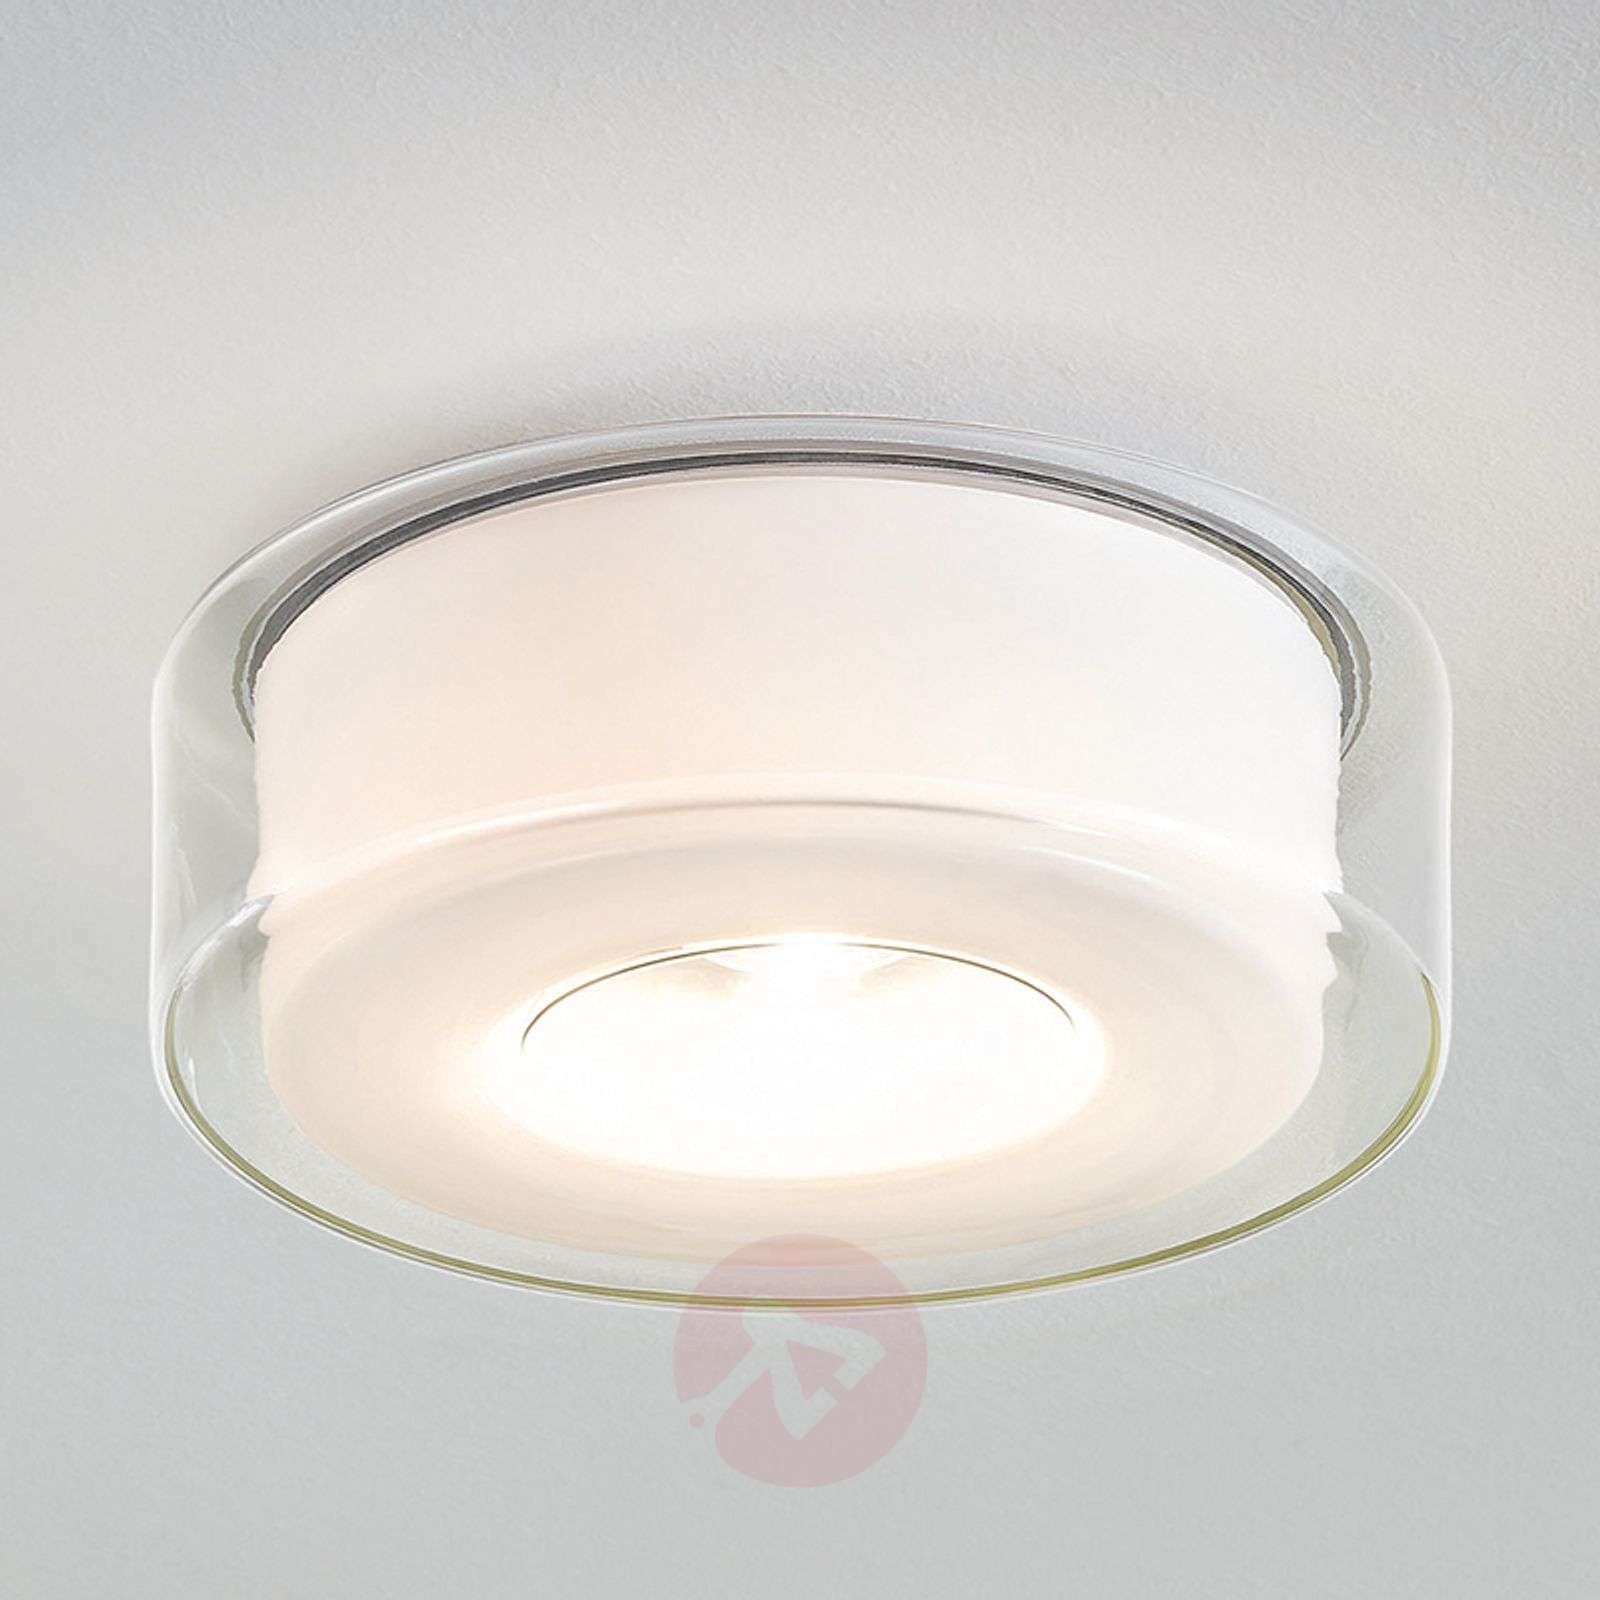 contemporary ceiling lighting. Glazed LED Designer Ceiling Light Curling-8550016-01 Contemporary Lighting B